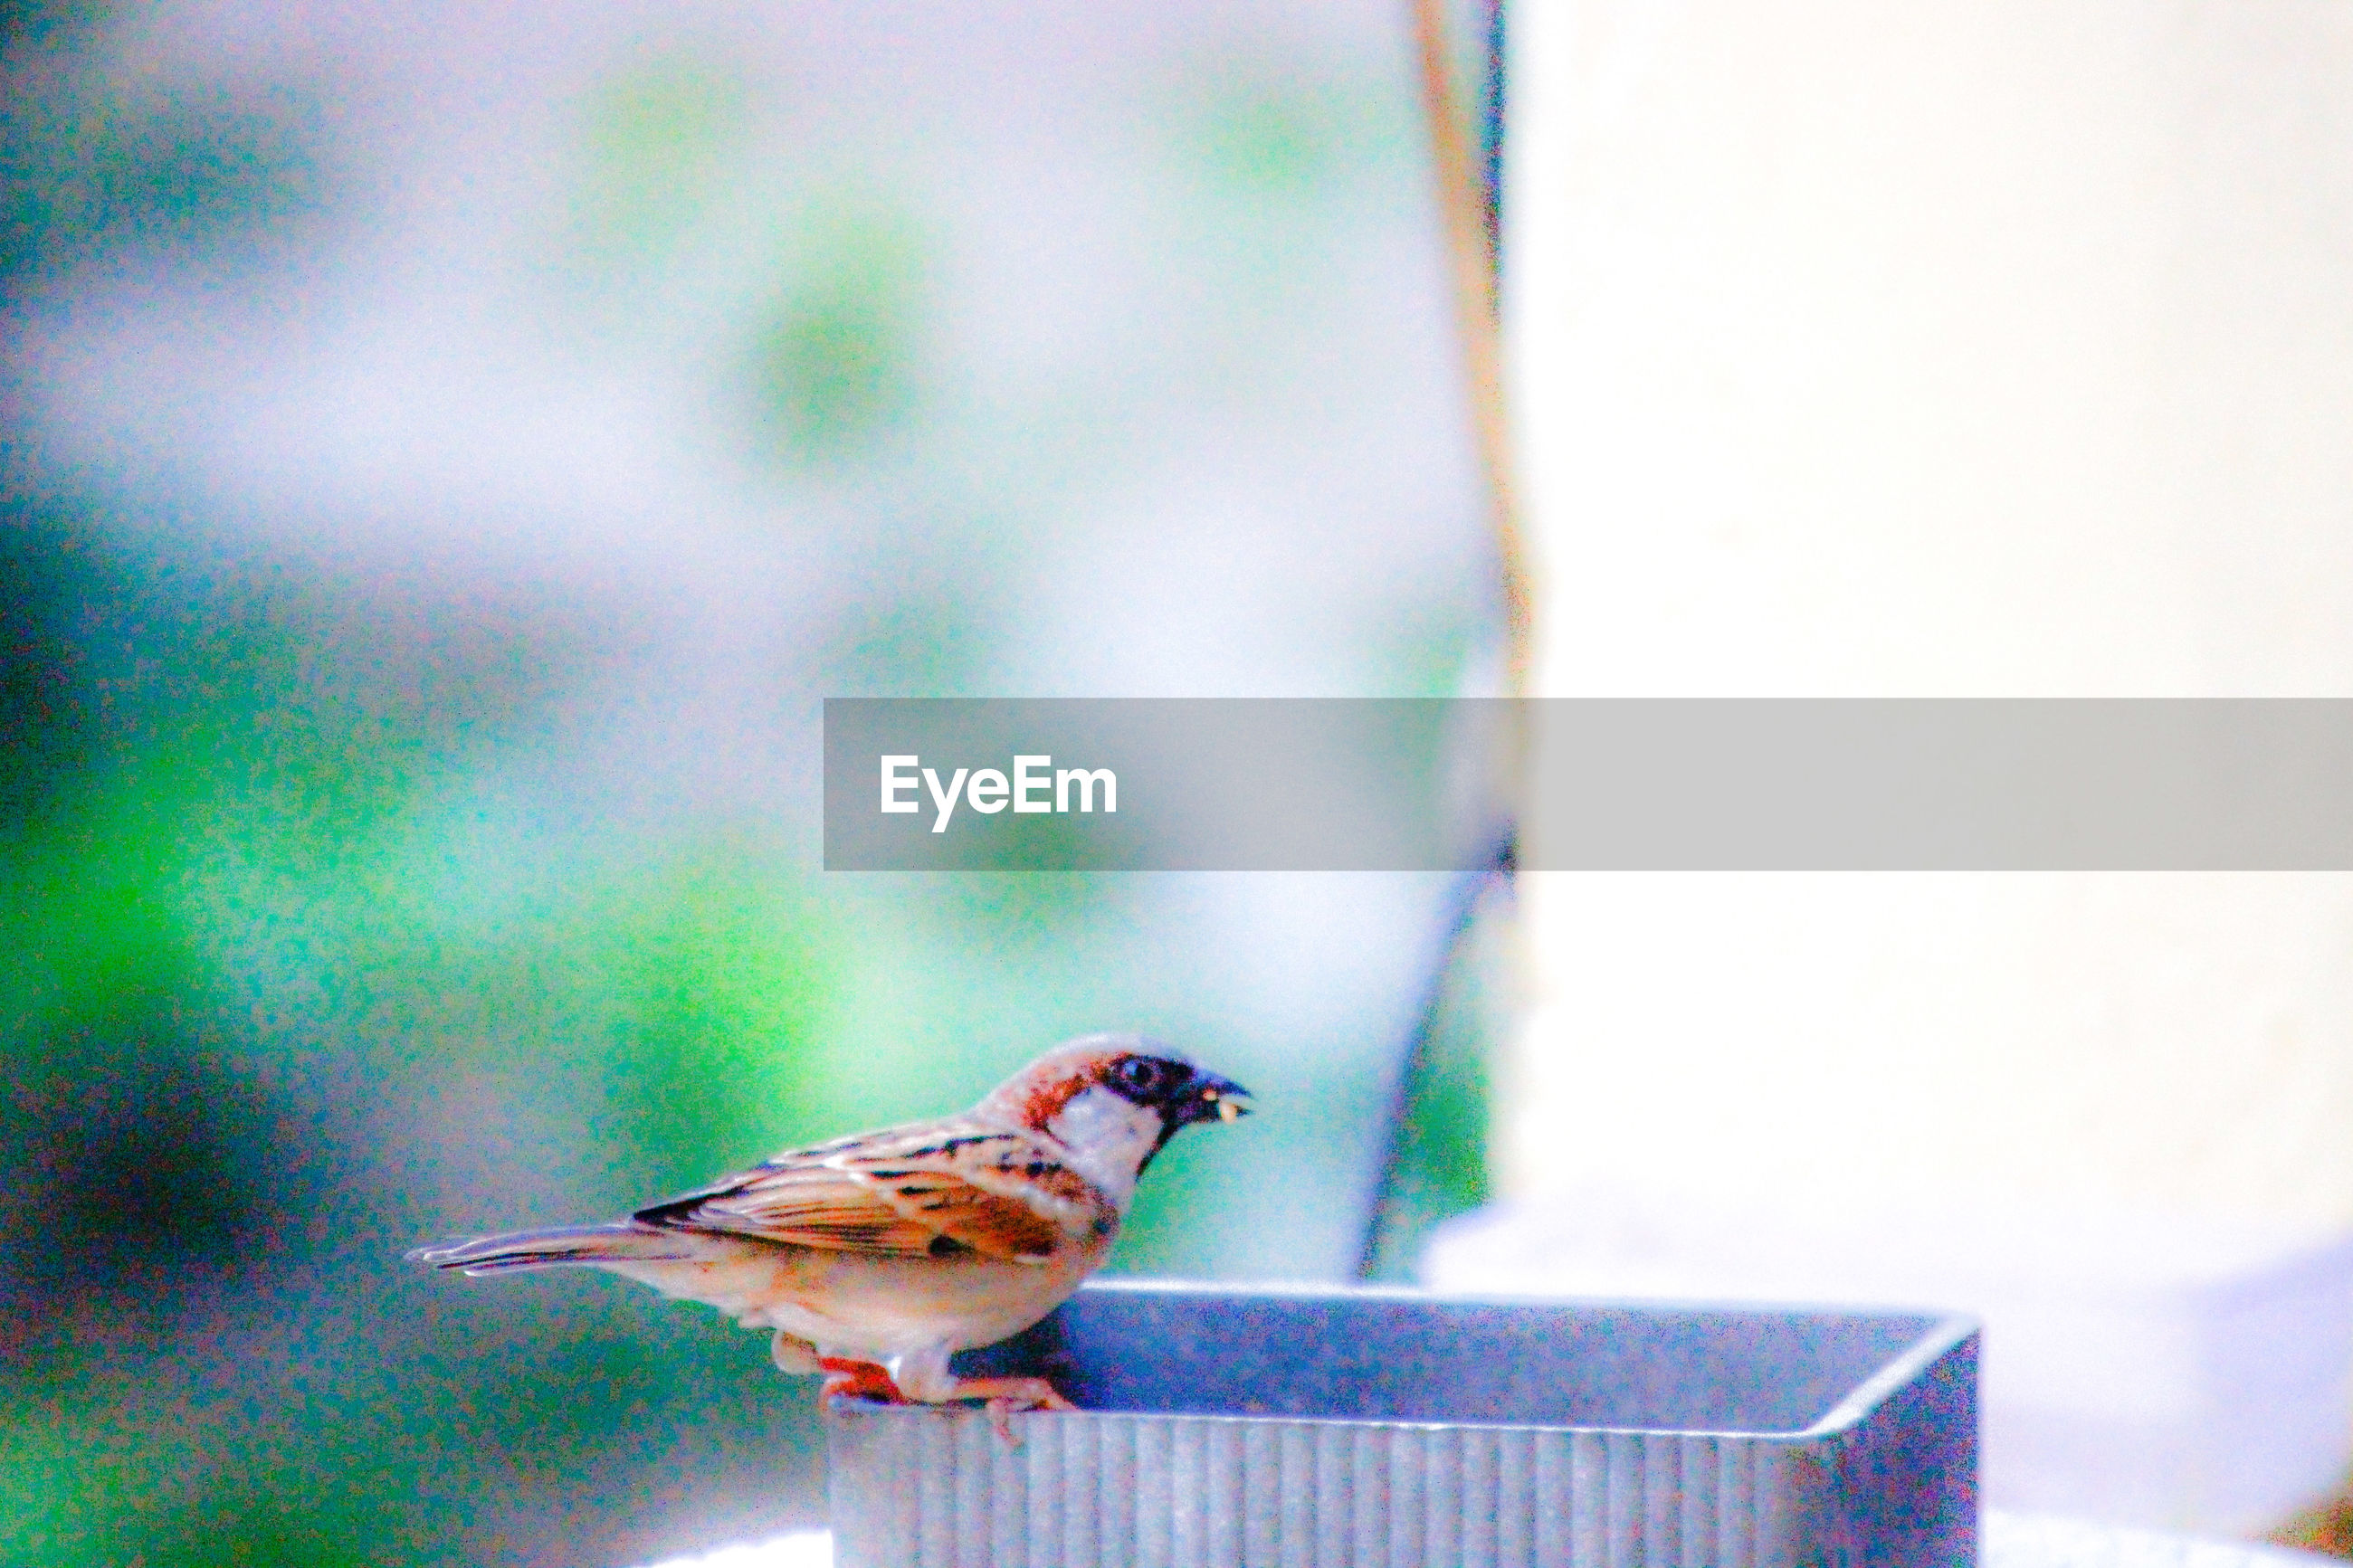 SIDE VIEW OF BIRD PERCHING ON A BLURRED BACKGROUND